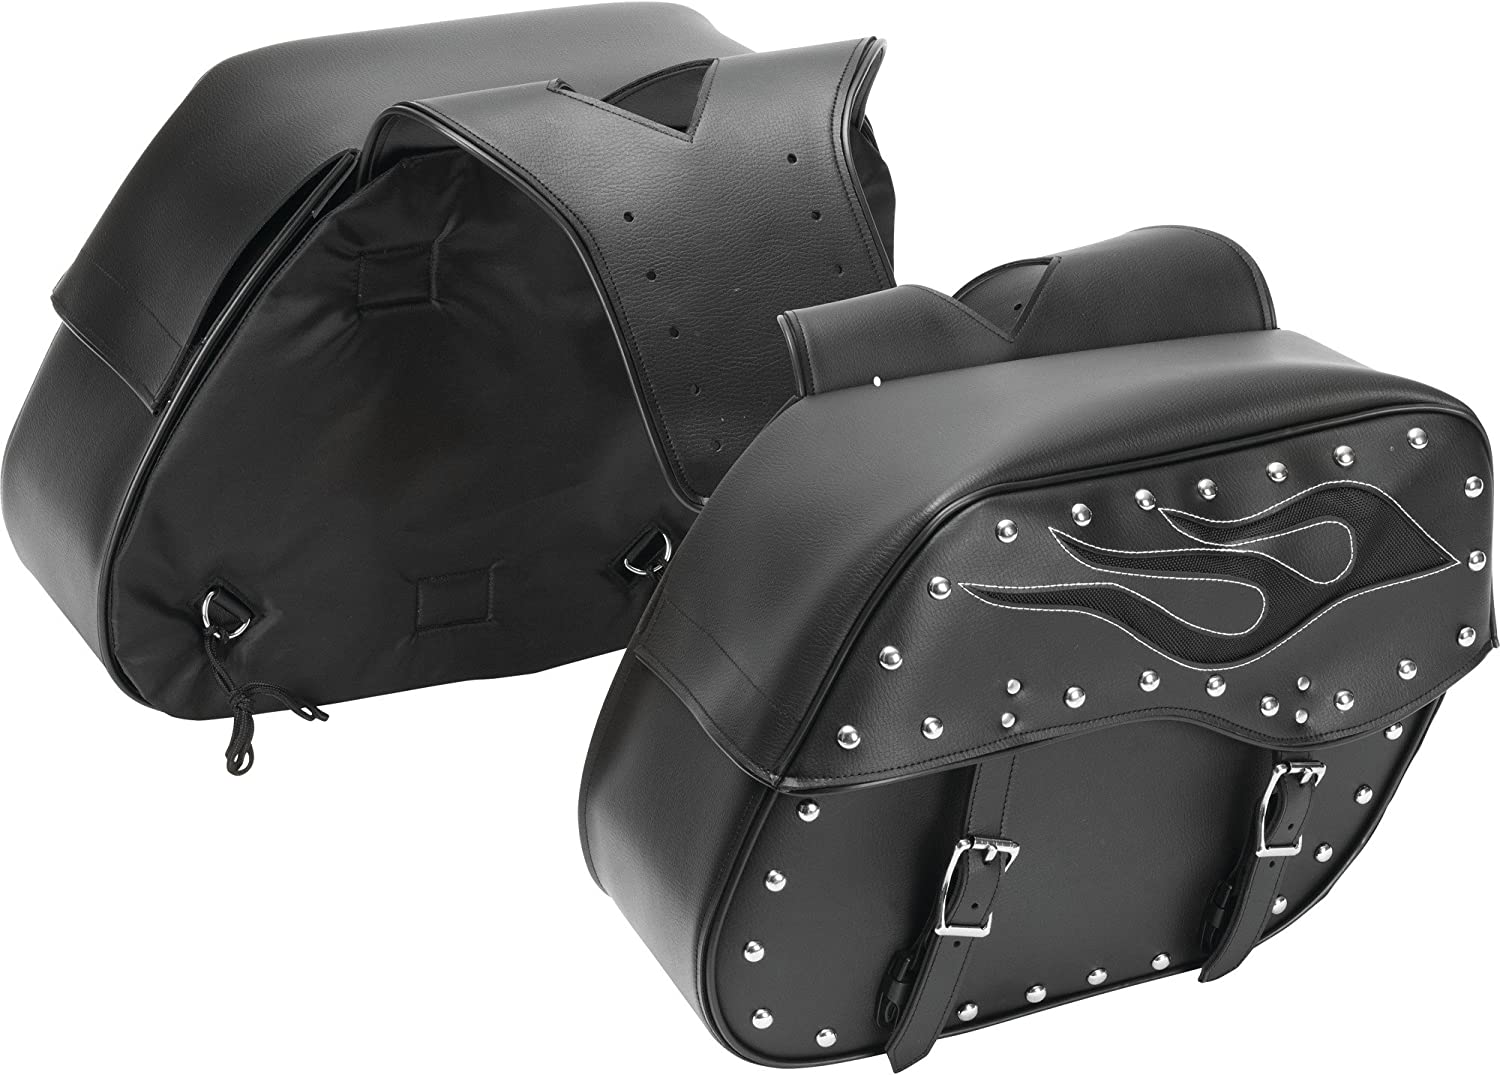 Diamond Plate 2pc Motorcycle Saddlebag Set with Flame Design